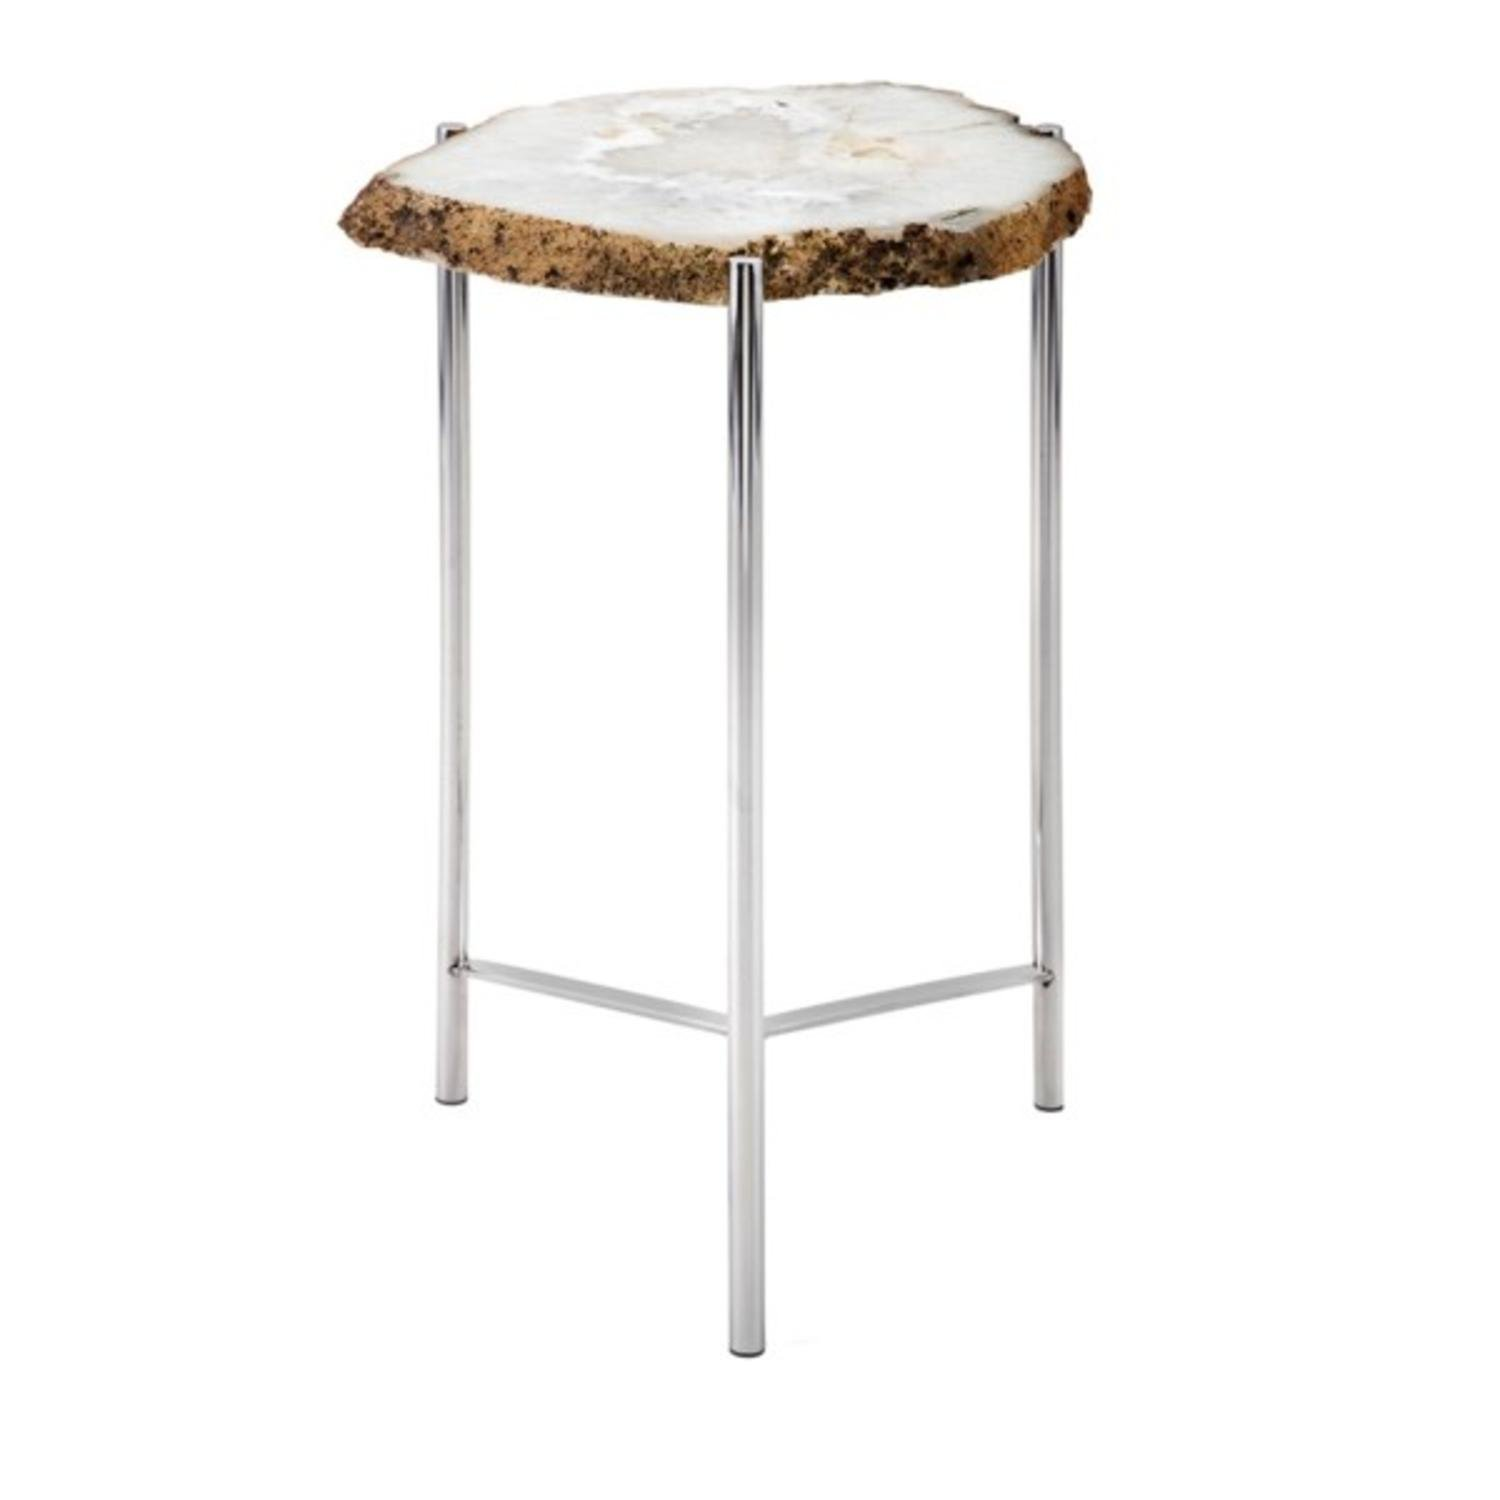 home furnishings white and brown log patterned agate accent table giselle trivet stand kitchen dining with built side tables tiffany pond lily lamp magnussen allure end wooden